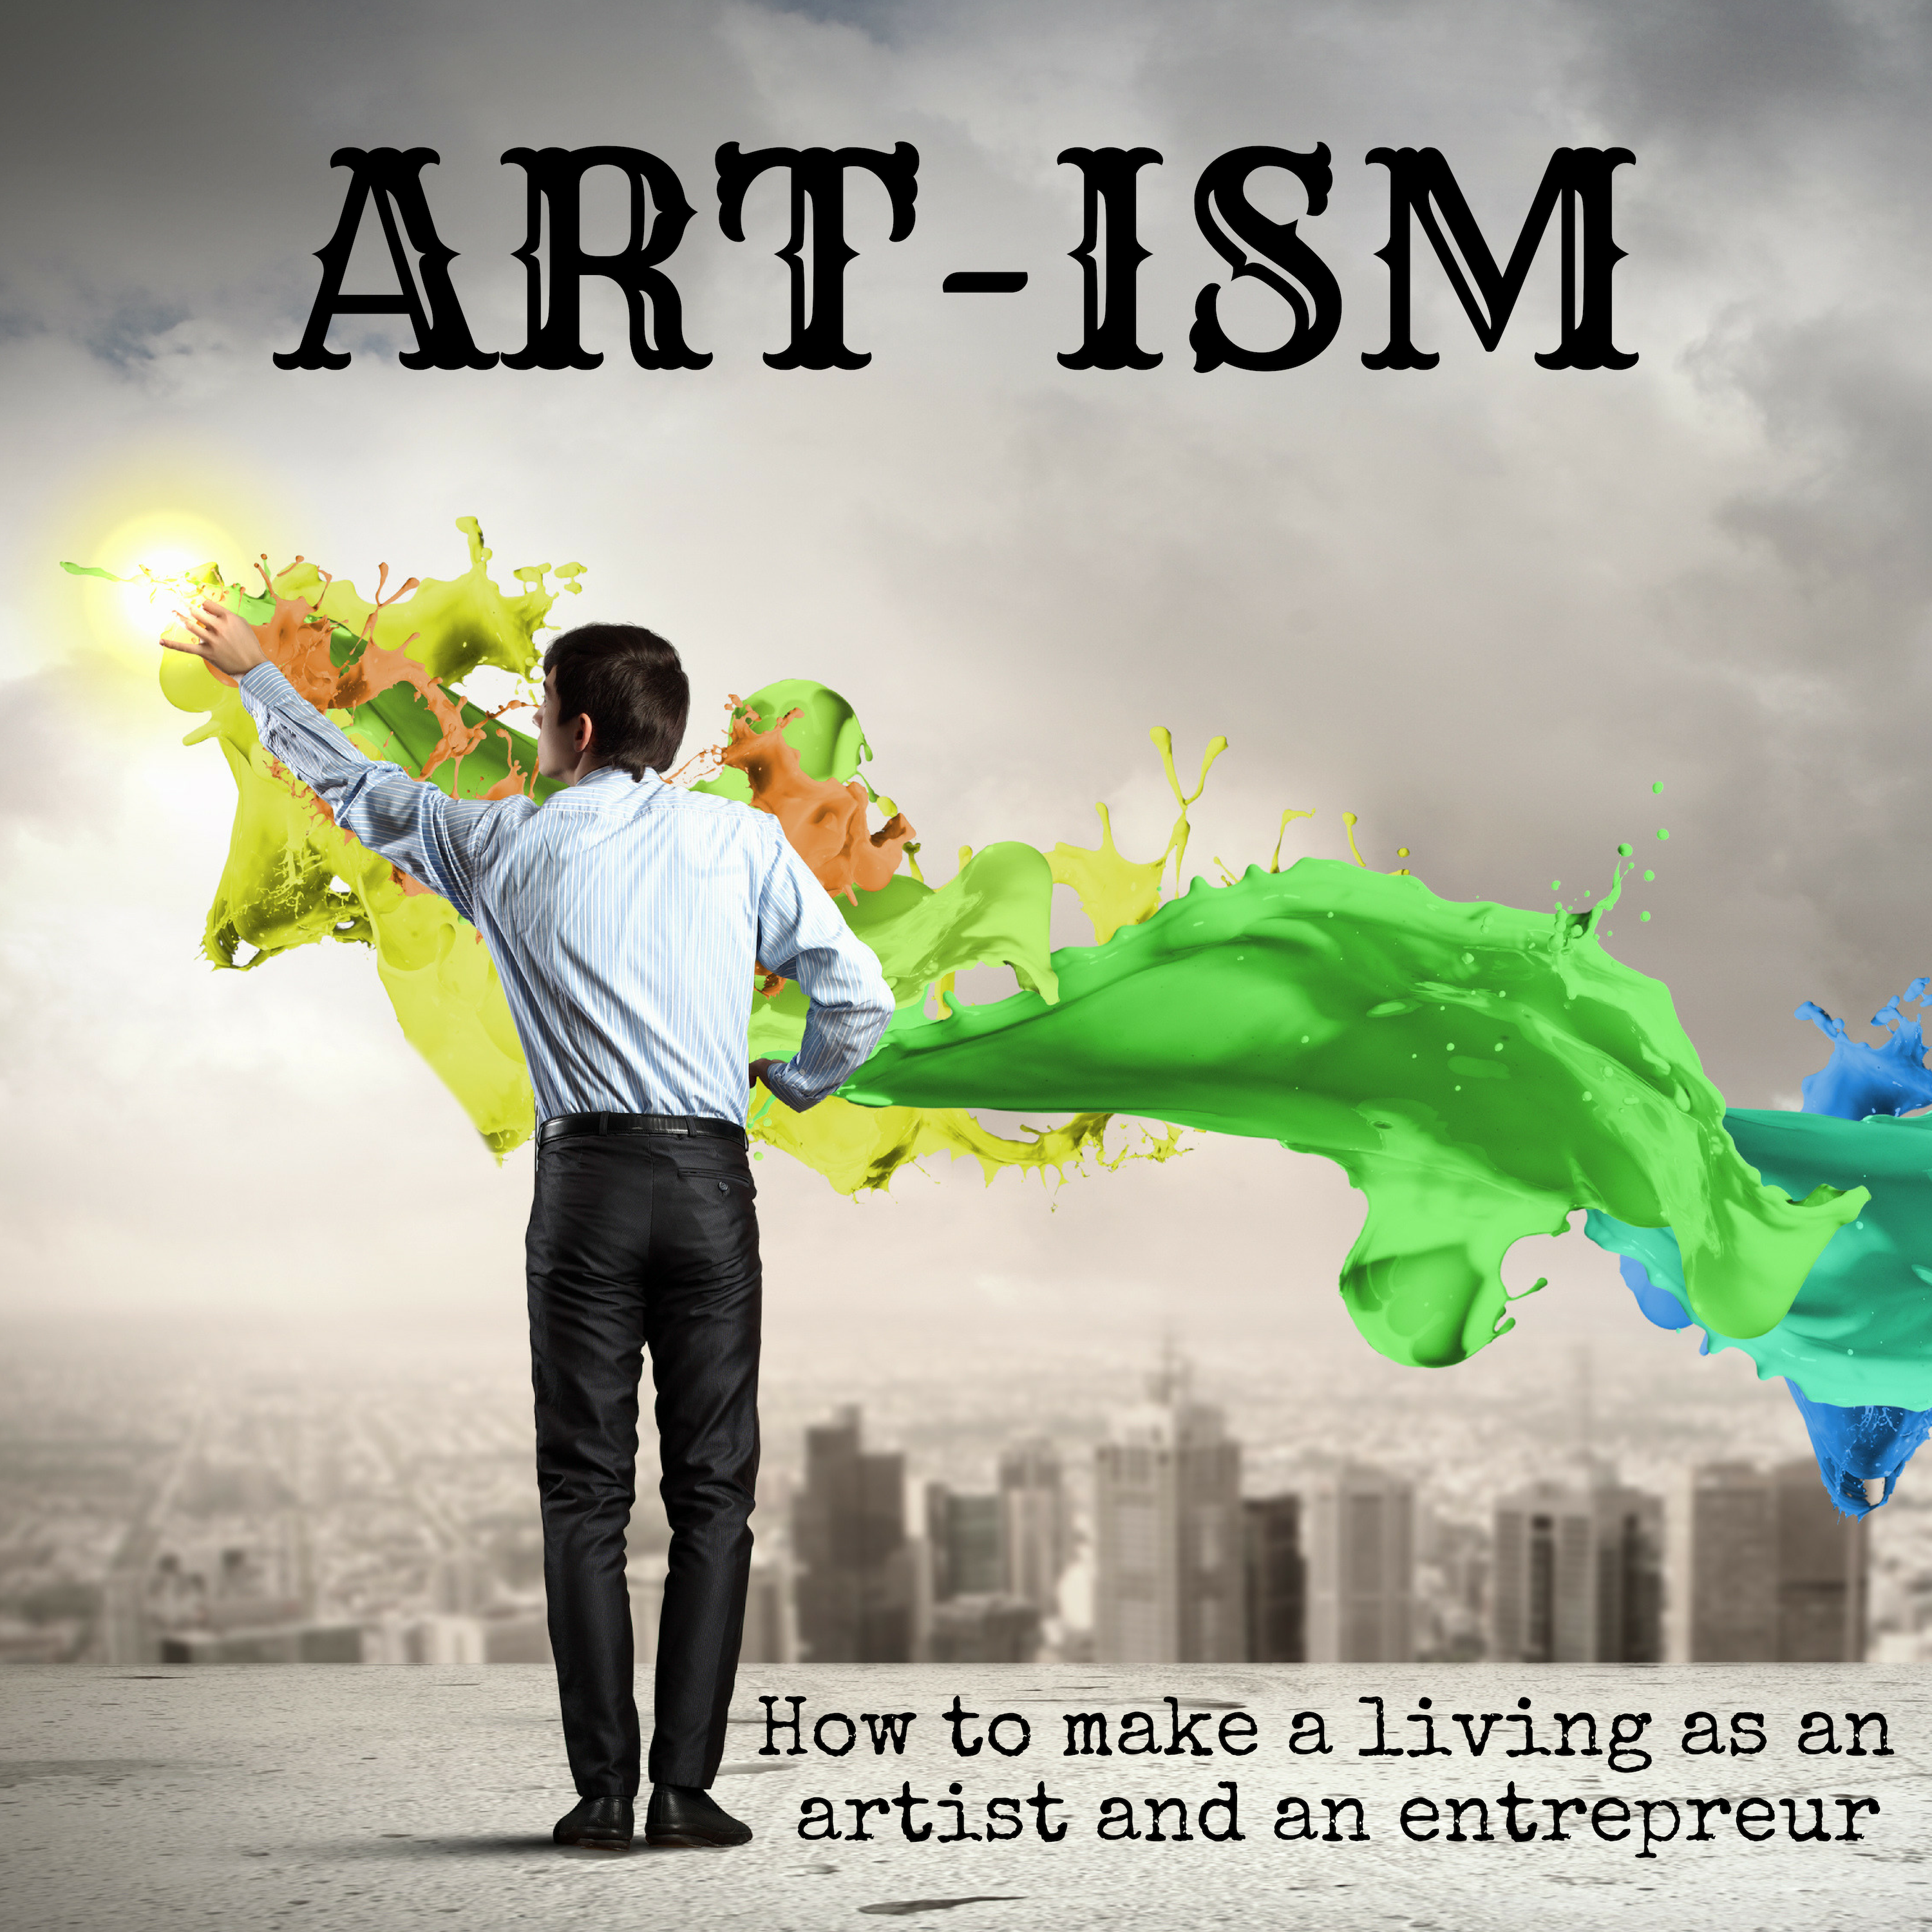 The Art-ism Podcast: How to make a living as an artist and an entrepreneur